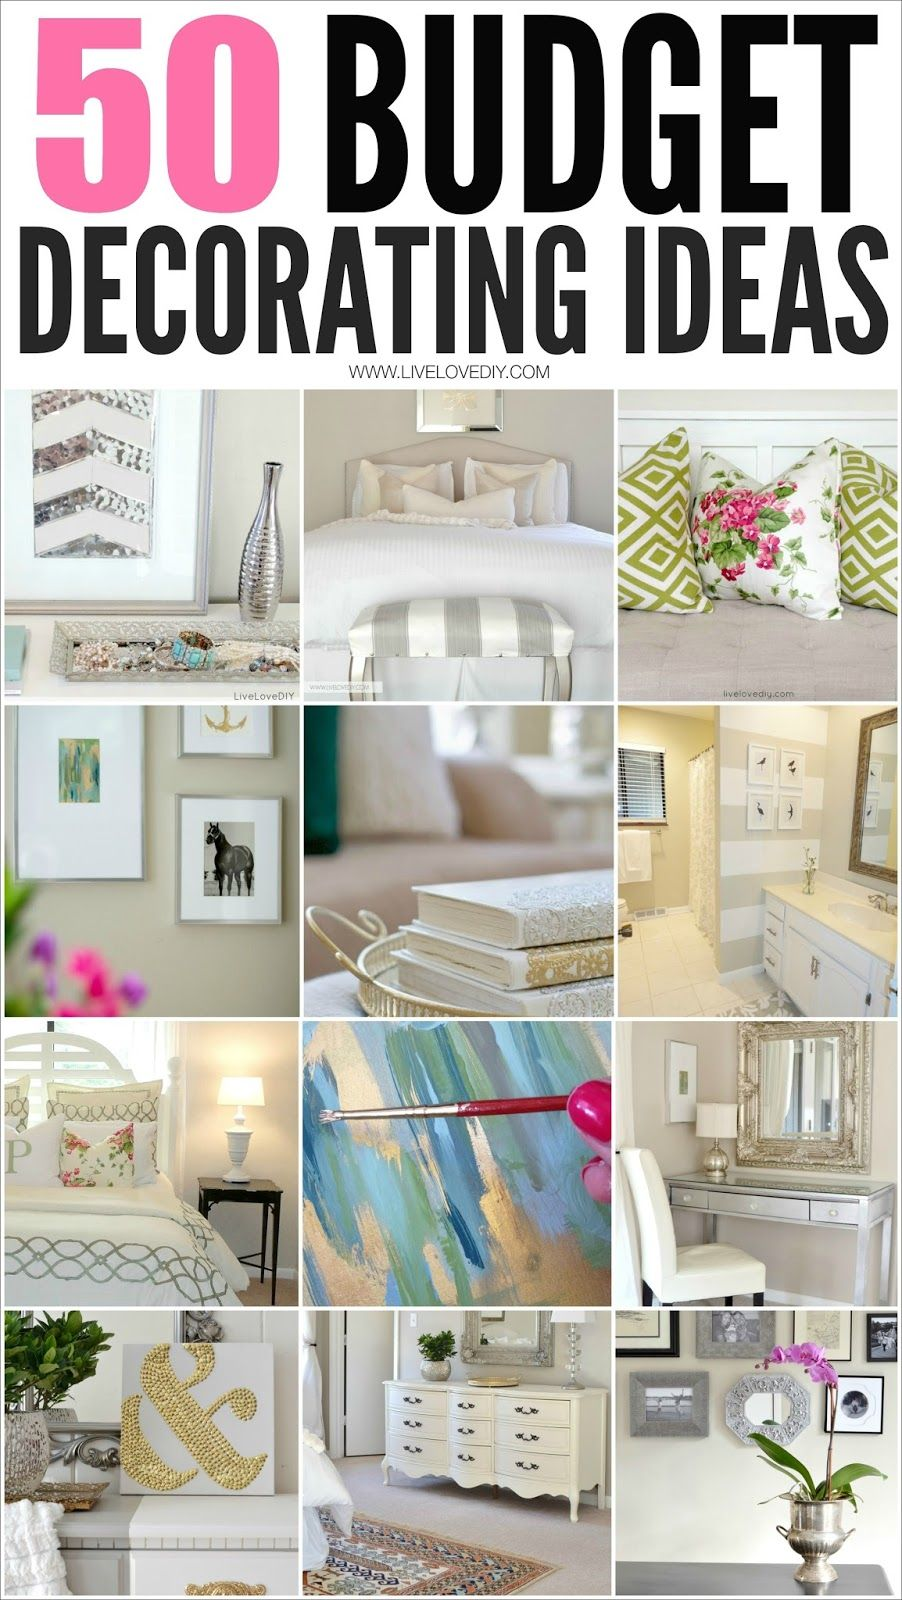 Delightful LiveLoveDIY: 50 Budget Decorating Tips You Should Know! Seriously One Of  The Most Helpful Collection Of DIY Ideas. MUST READ